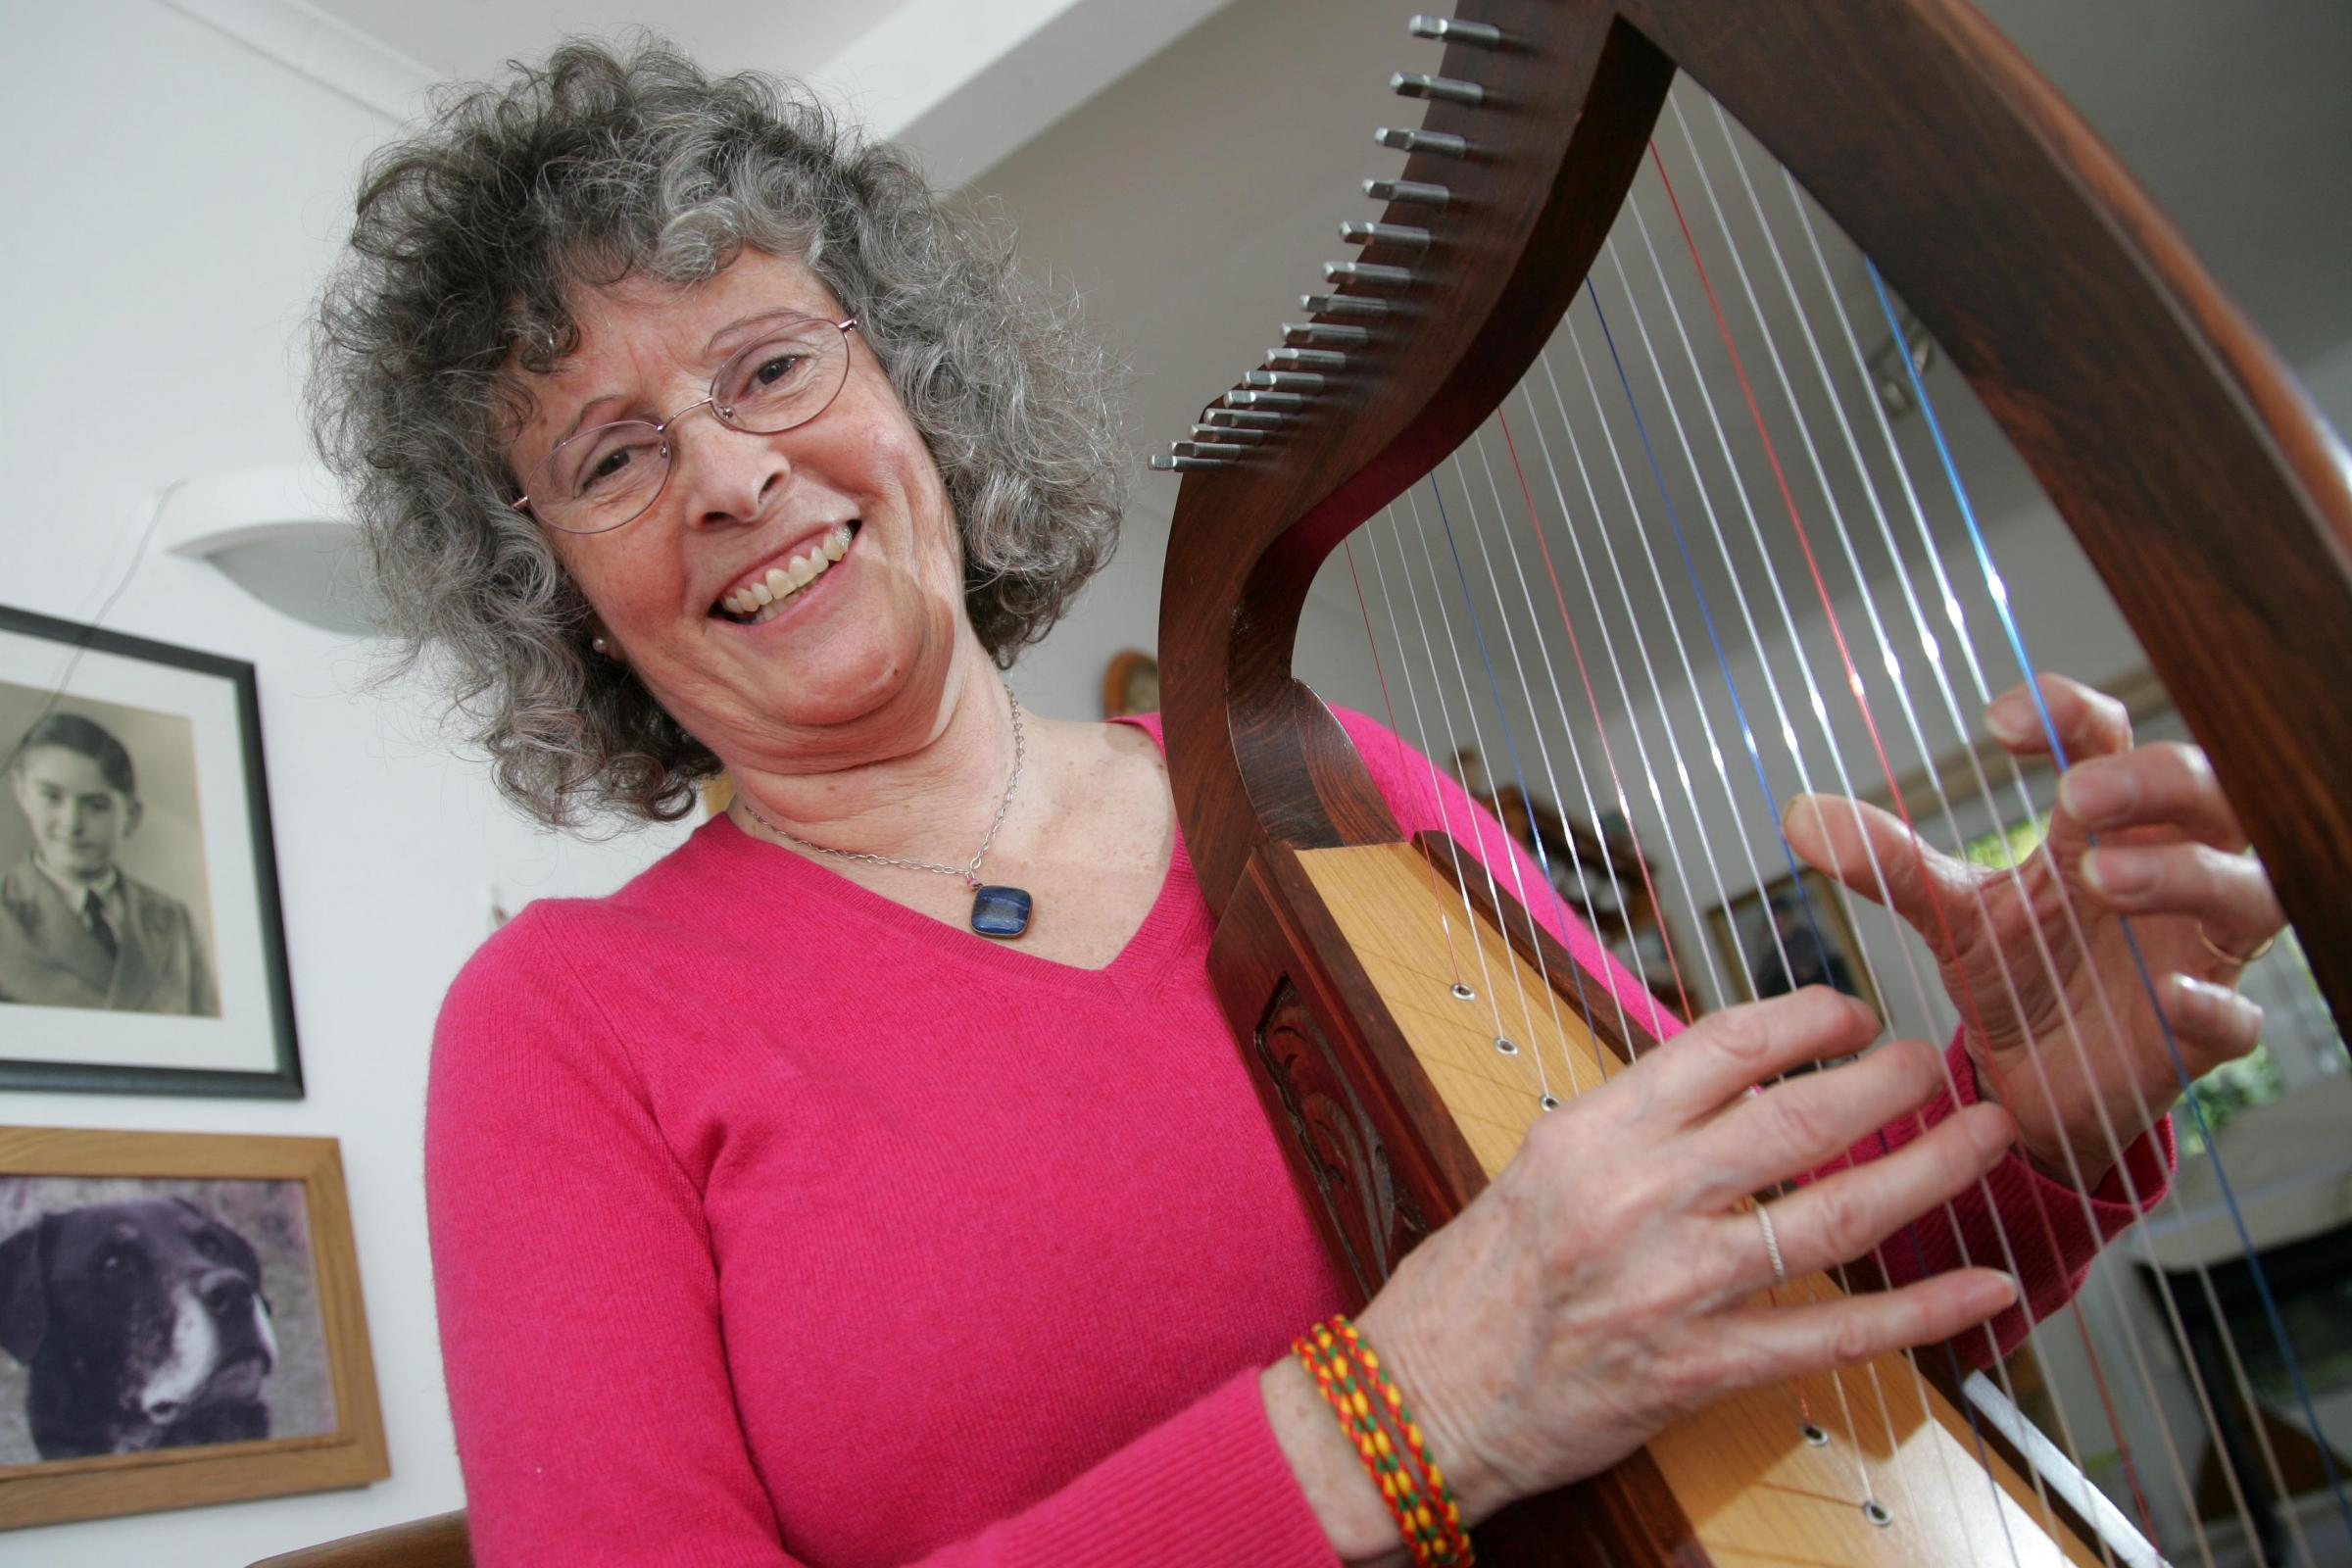 Unsung hero: Hospice volunteer soothes patients with harp music